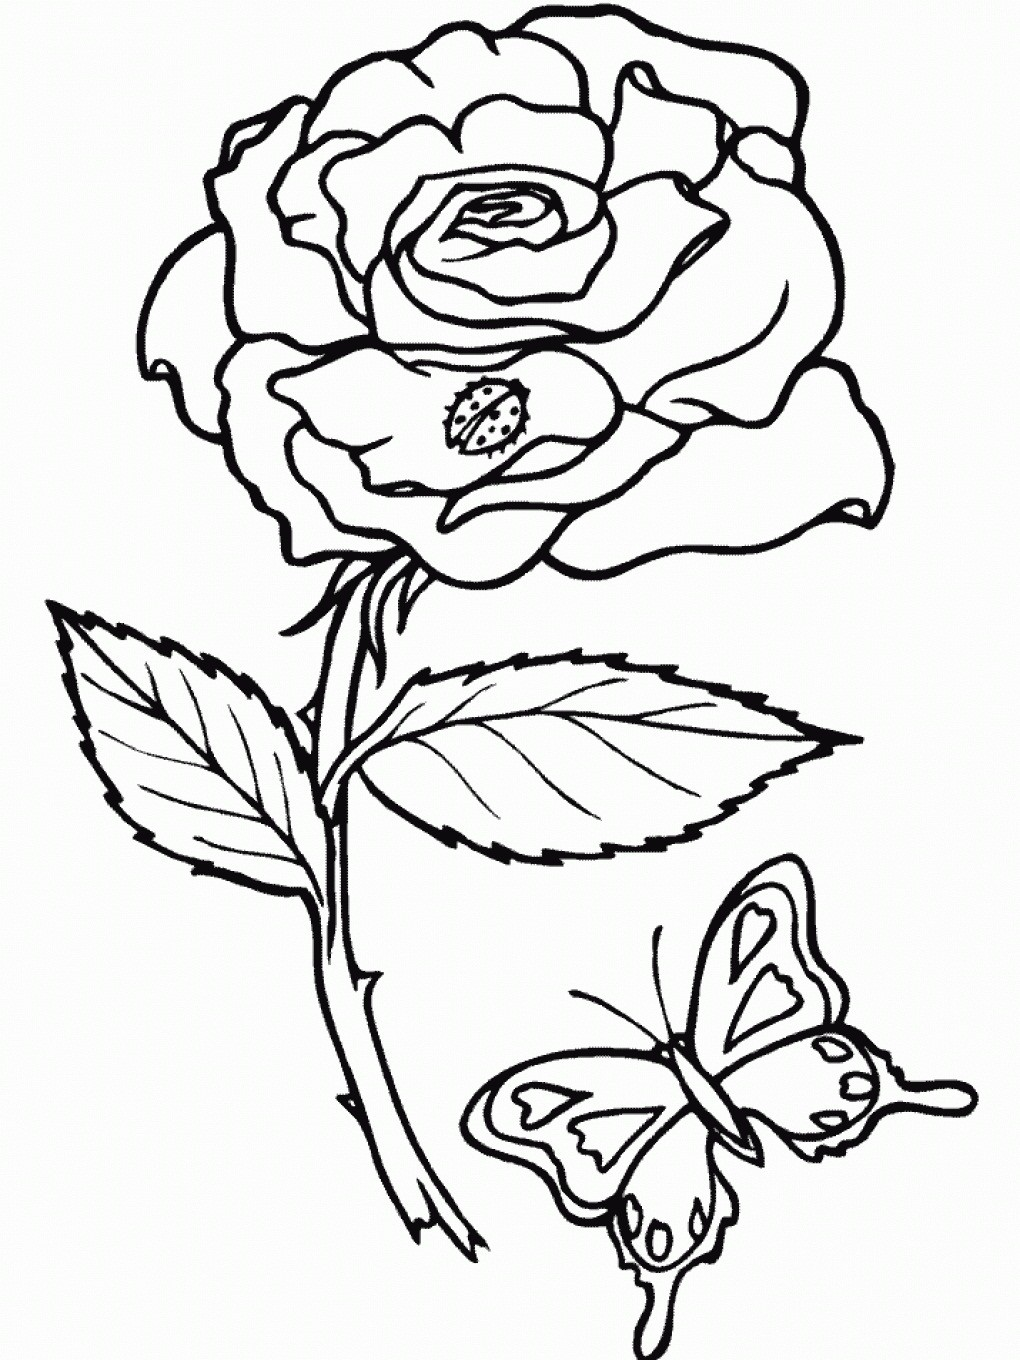 1020x1360 Roses Coloring Pages Free Printable New Roses Coloring Pages